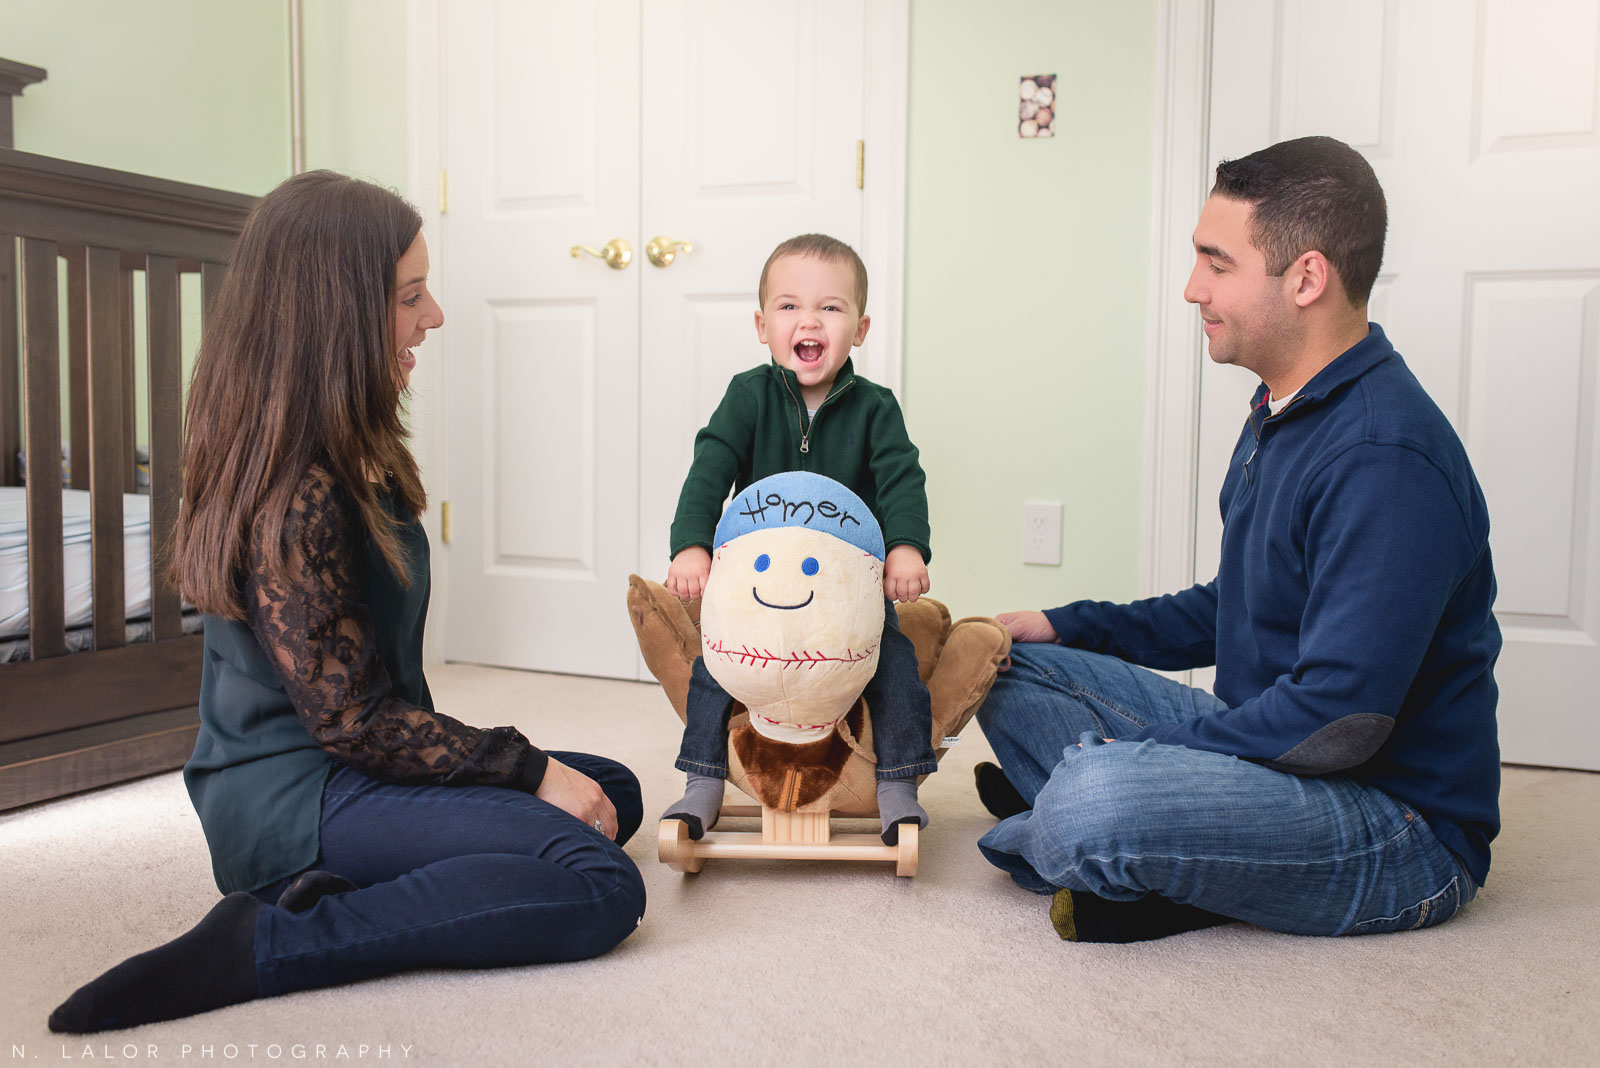 Mom and dad enjoying some fun play time with their toddler son. Lifestyle family portrait by N. Lalor Photography.